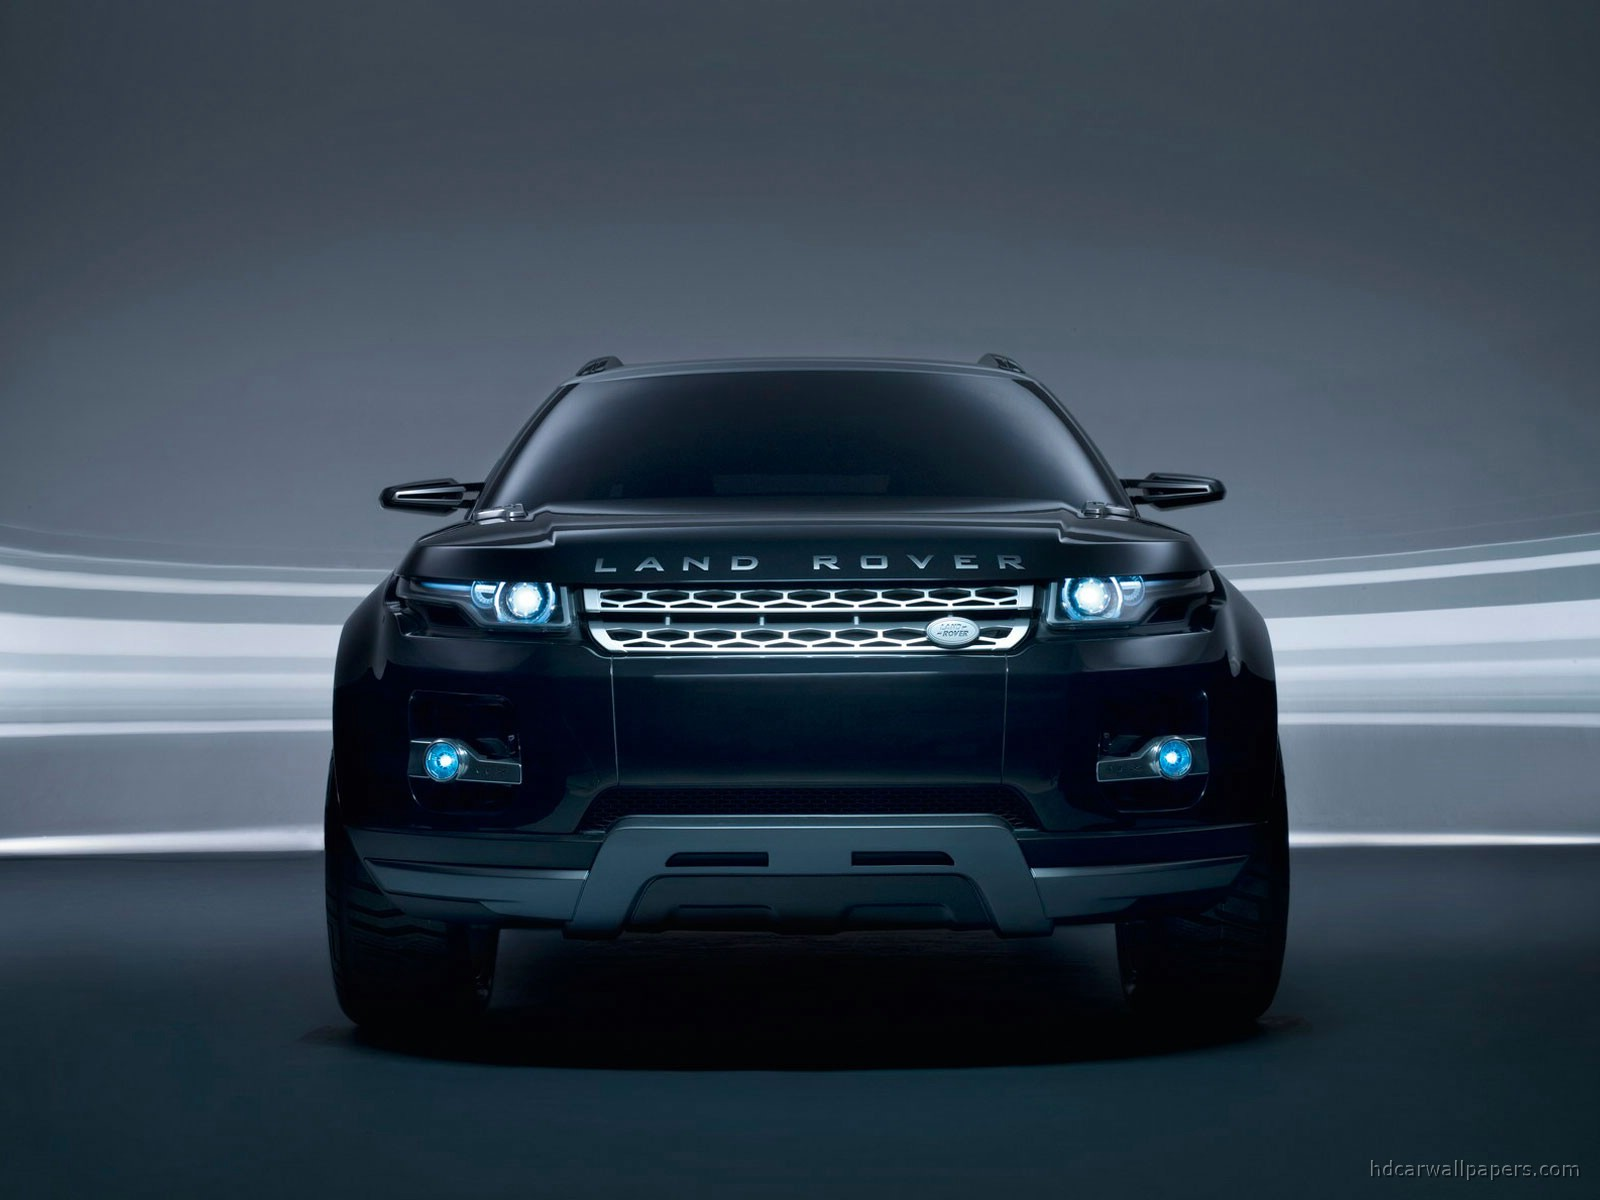 Land Rover LRX Concept Nice HD Wallpaper #onyjo Amazing Free Desktop Car